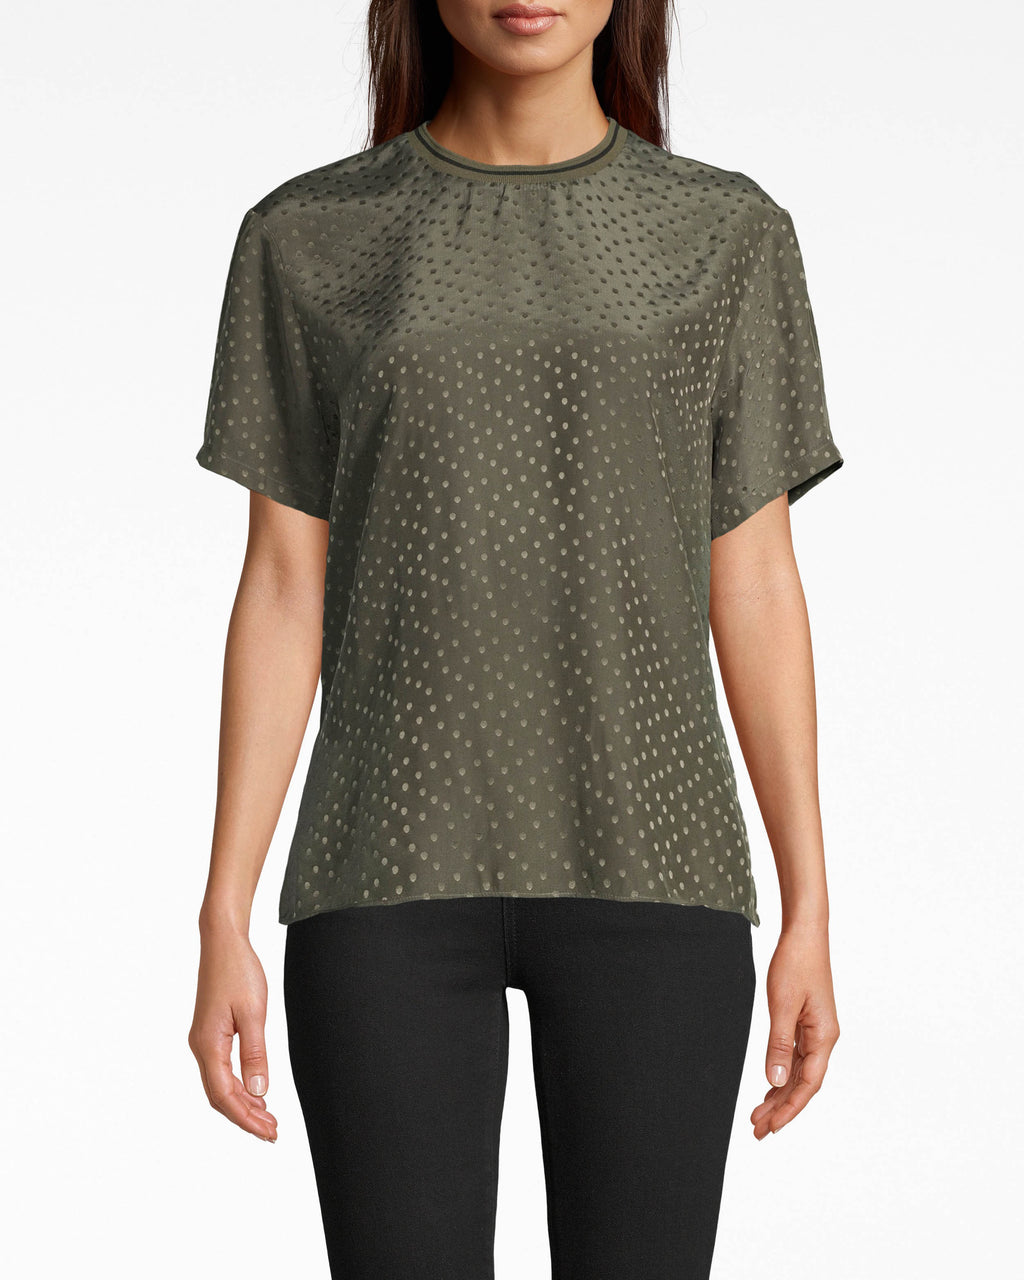 CT17938 - POLKA DOT JACQUARD T-SHIRT - tops - shirts - THIS LIGHTWEIGHT JACQUARD T-SHIRT WILL BE ON ROTATION ALL SUMMER LONG. FEATURING A SLIGHT HIGH LOW HEM, POLKA DOT DETAILS THROUGHOUT, AND A SPORTY STRIPED COLLAR. Add 1 line break STYLIST TIP: PAIR WITH DENIM AND SLIDES.